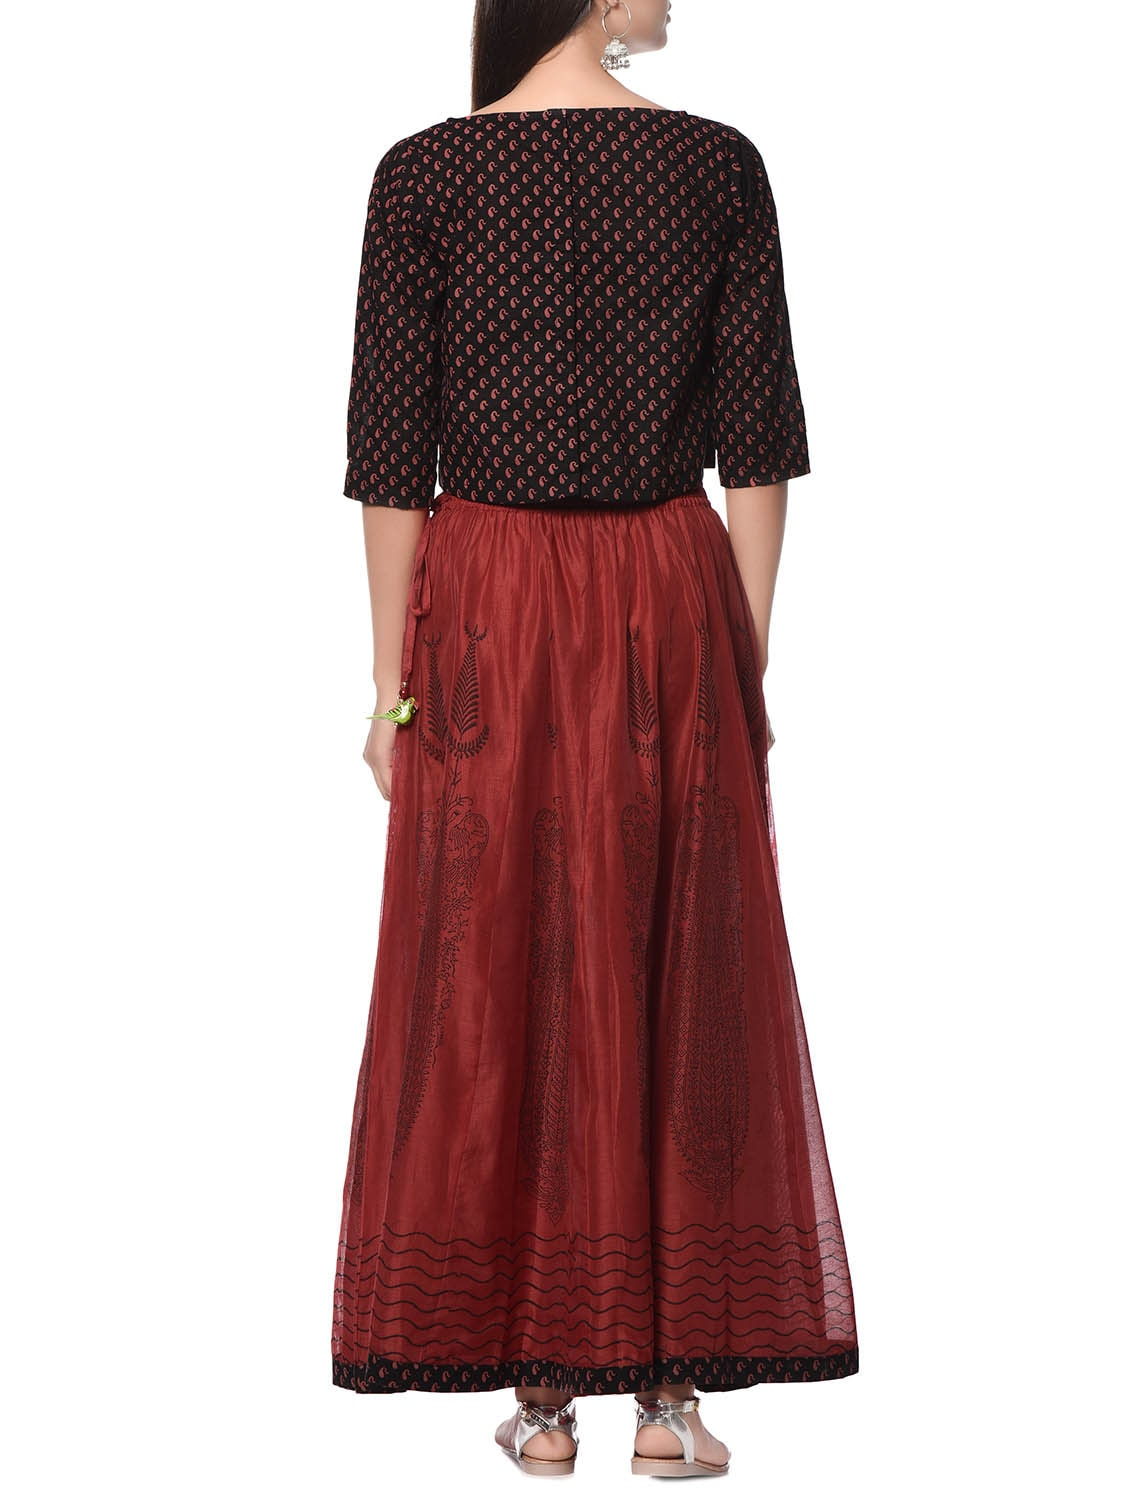 649db05a1158 Red And Black Chanderi Silk Skirt And Top Set